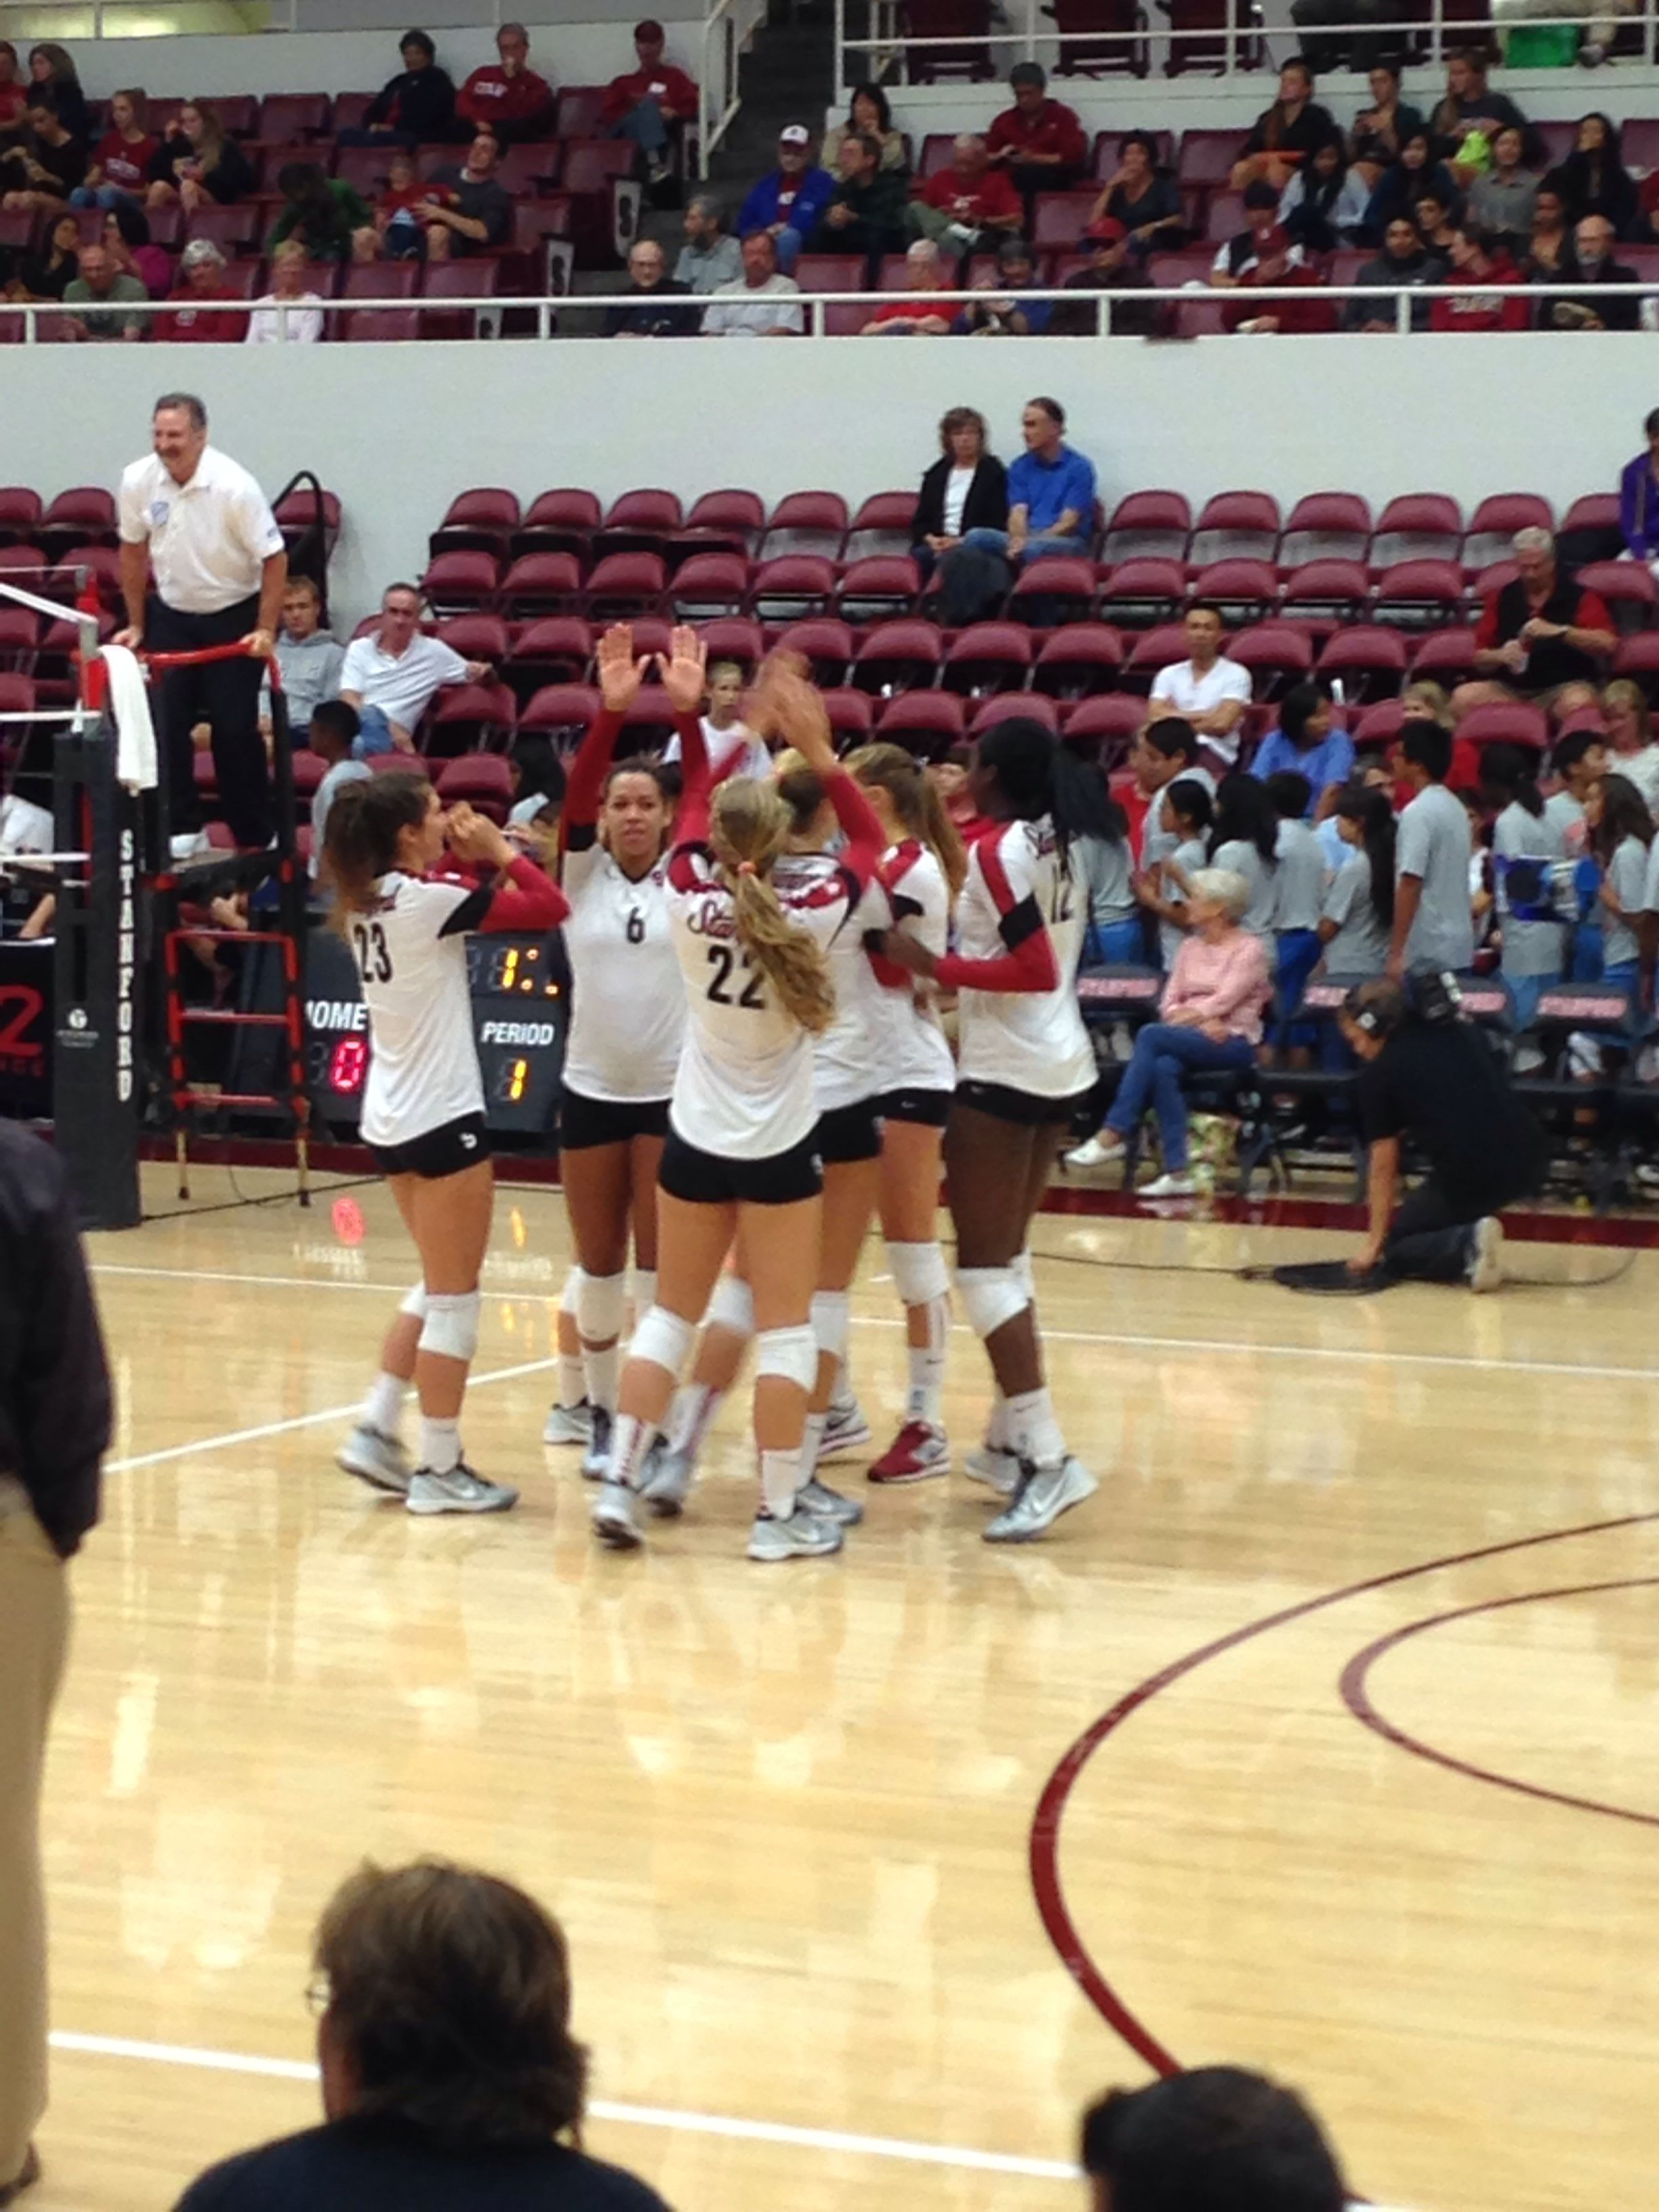 Stanford Women S Volleyball On Their Way To A Victory Over St Mary S 9 20 13 Women Volleyball Volleyball Sports